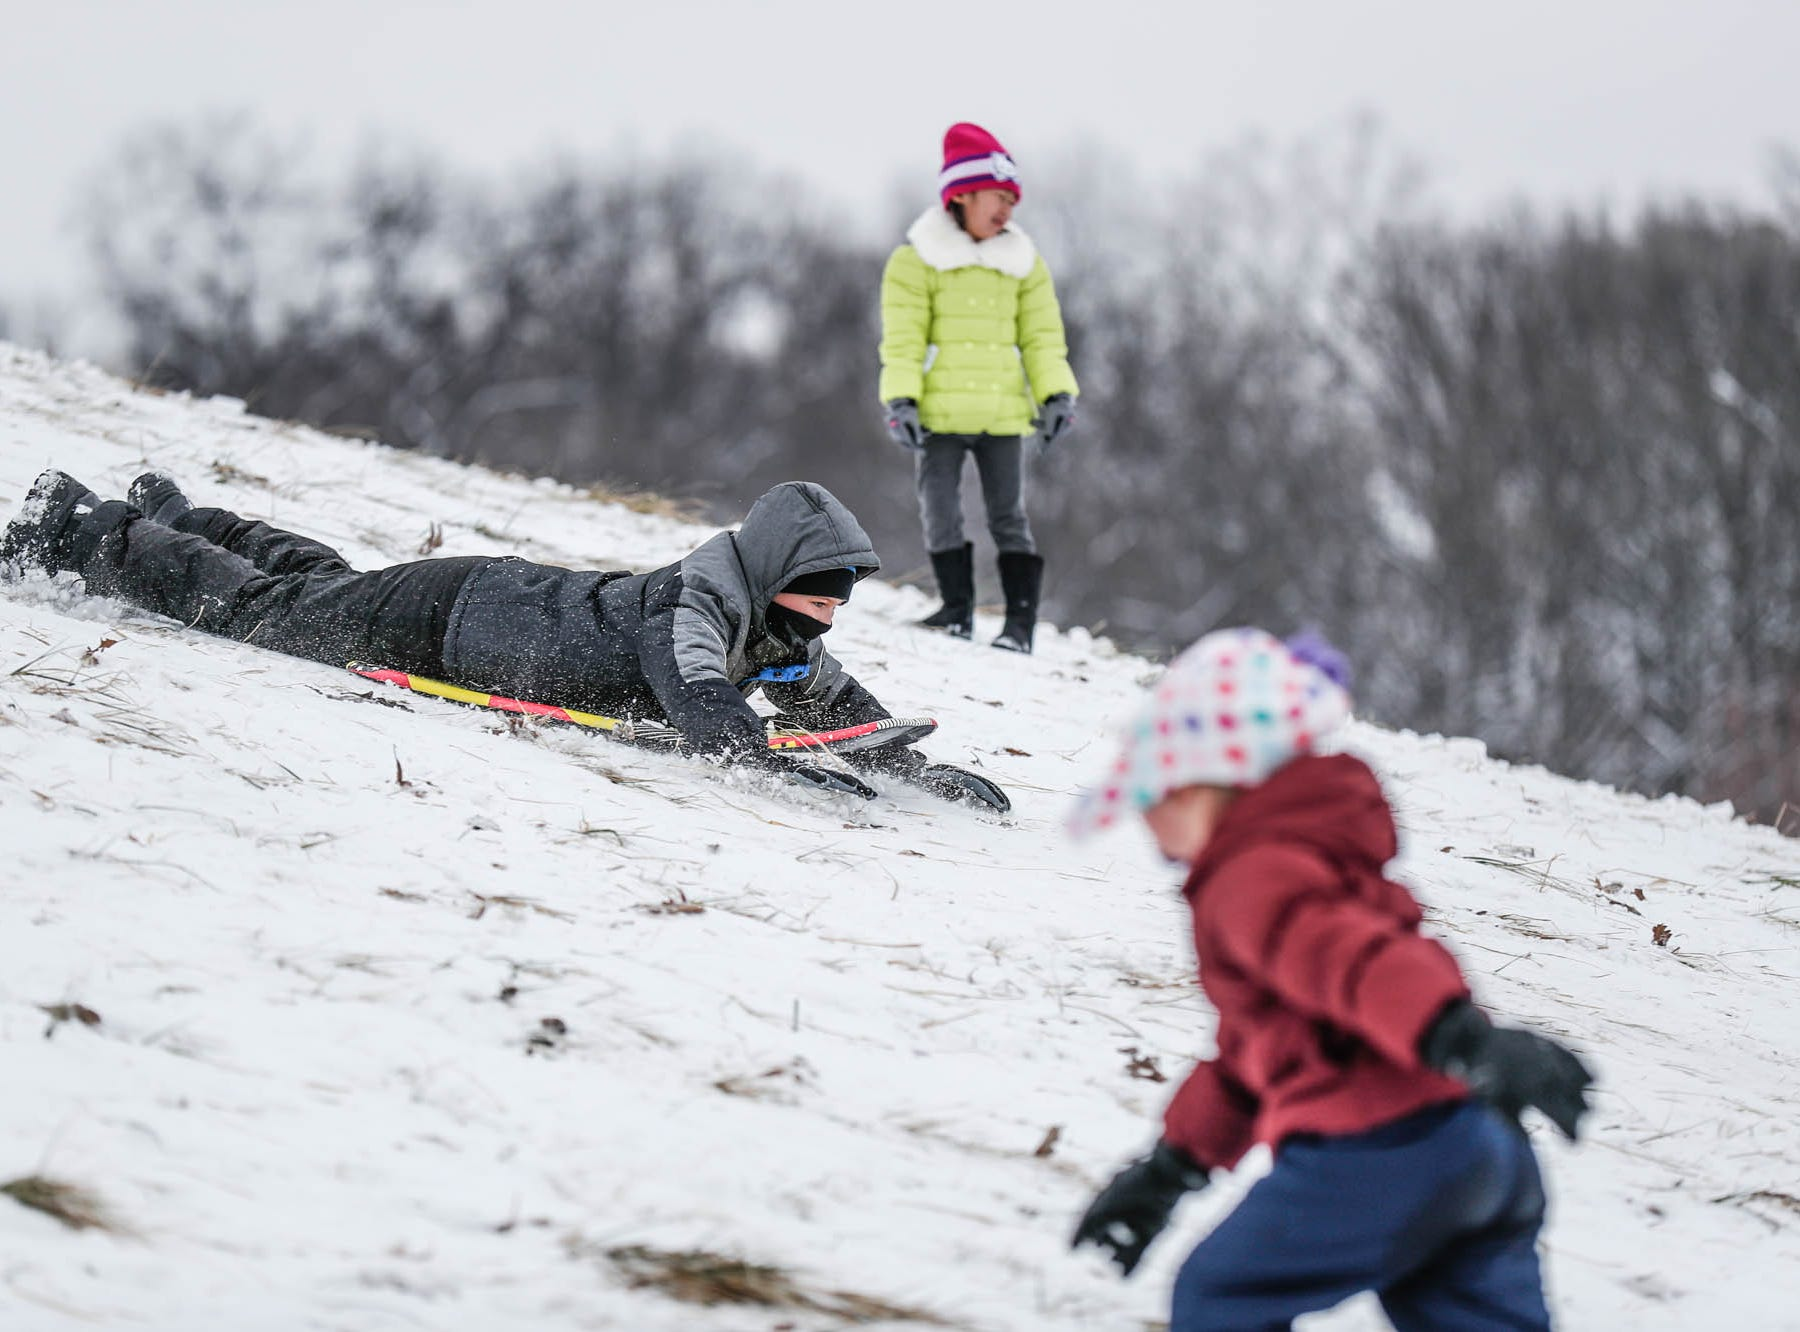 Children take to the slopes at West Park in Carmel Ind. on Sunday, Jan. 13, 2019.